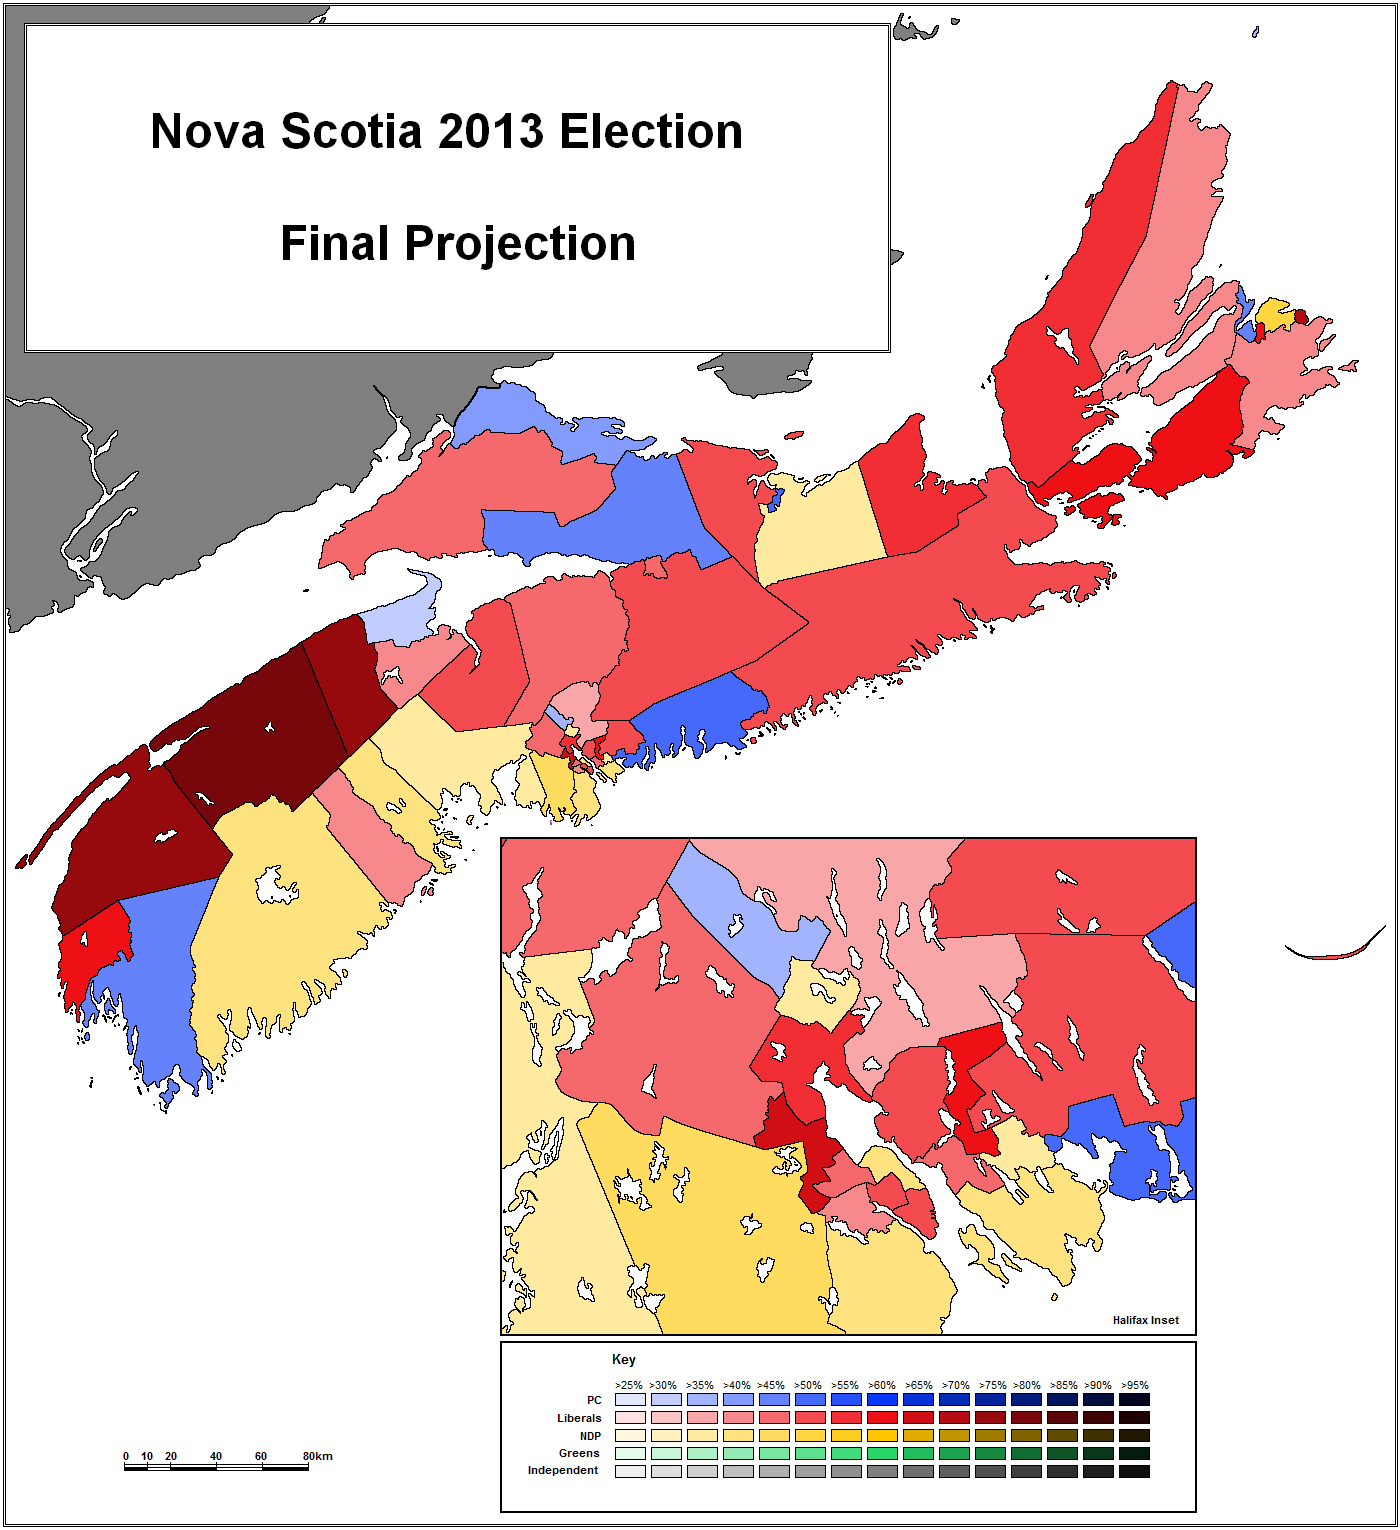 Nova Scotia 2013 Election Day Projection